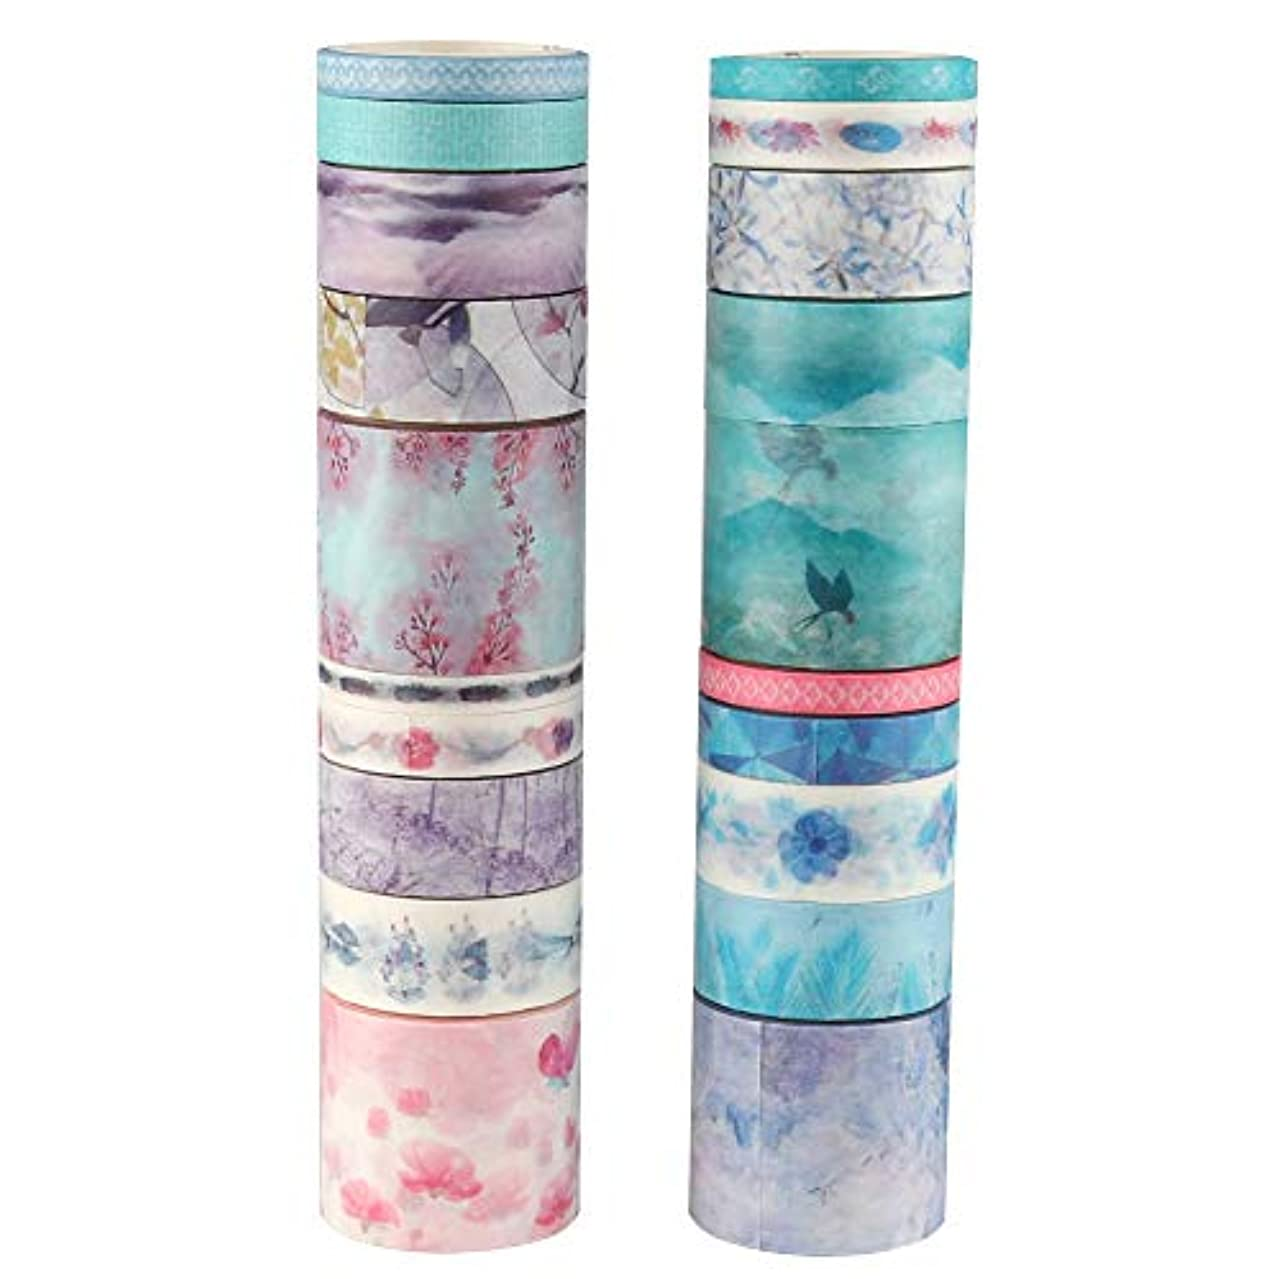 Molshine 20Rolls(Length 6.6ft/Roll) Washi Masking Tape Set,Adhesive Paper,Crafts Tape for DIY,Planners,Scrapbook,Object Decorative,Collection,Gift Wrapping-The Years of Flowers